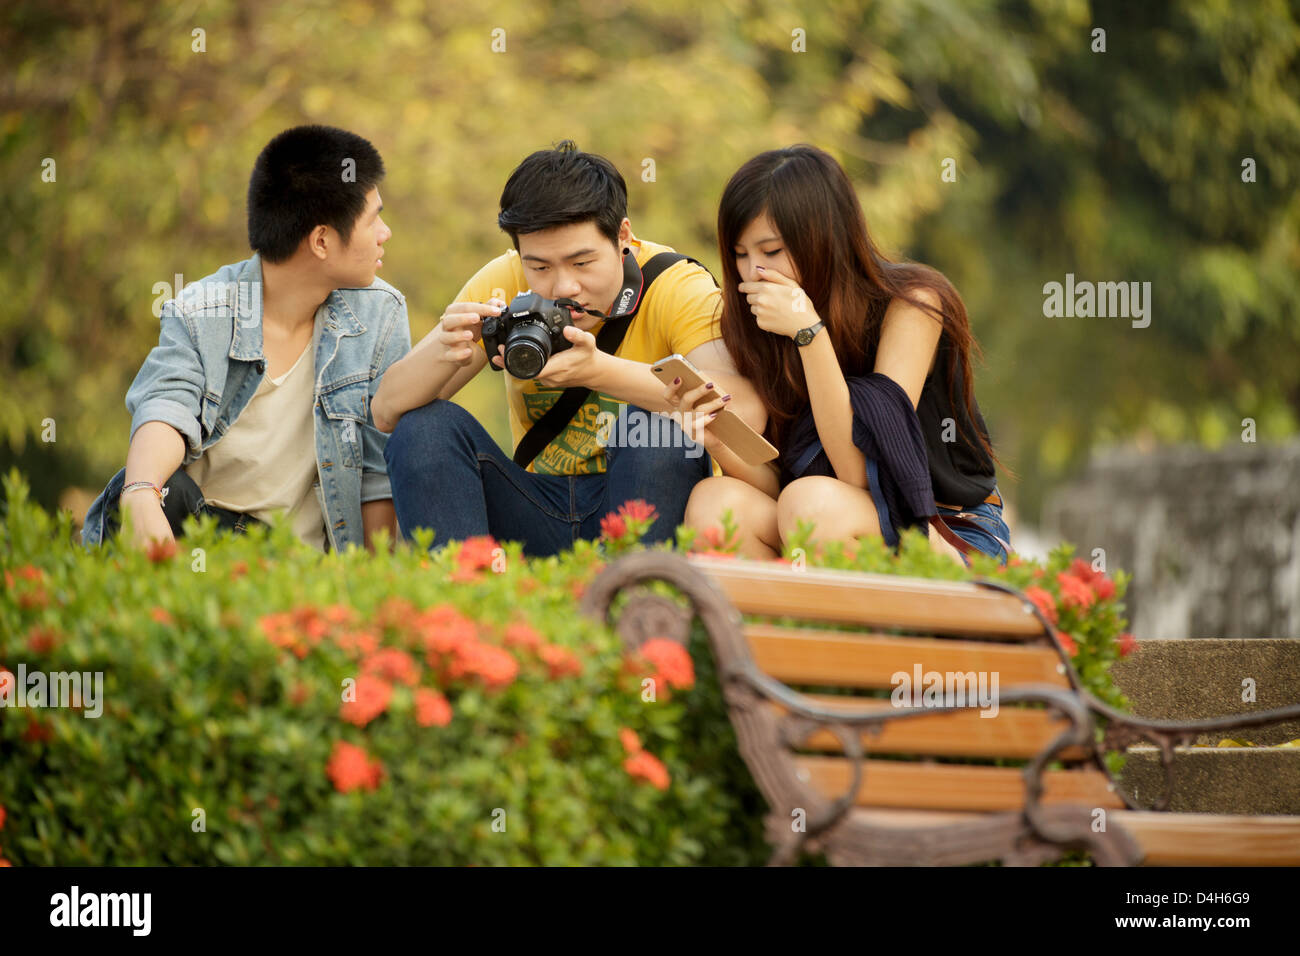 Three people sitting in park, one is  watching the photos on camera, Bangkok, Thailand Stock Photo